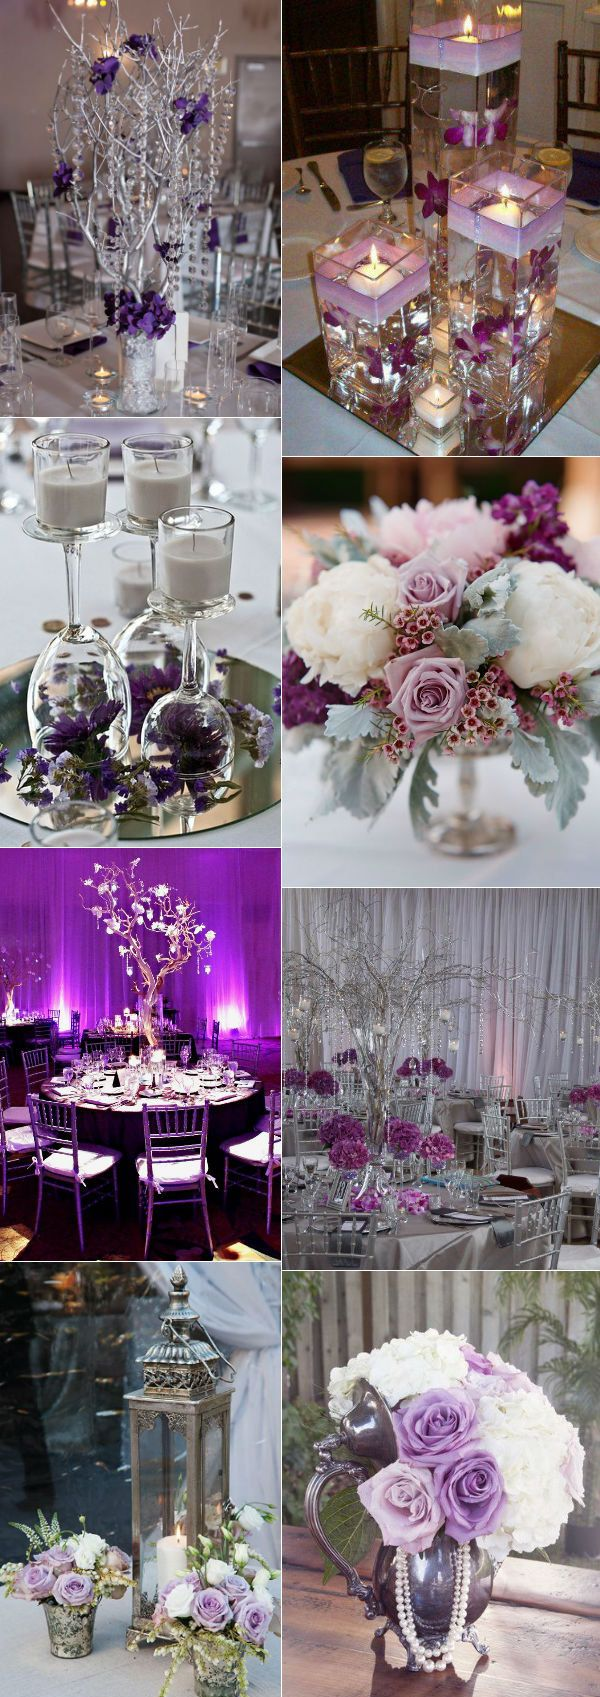 Stunning Purple And Silver Wedding Decorations Centerpieces